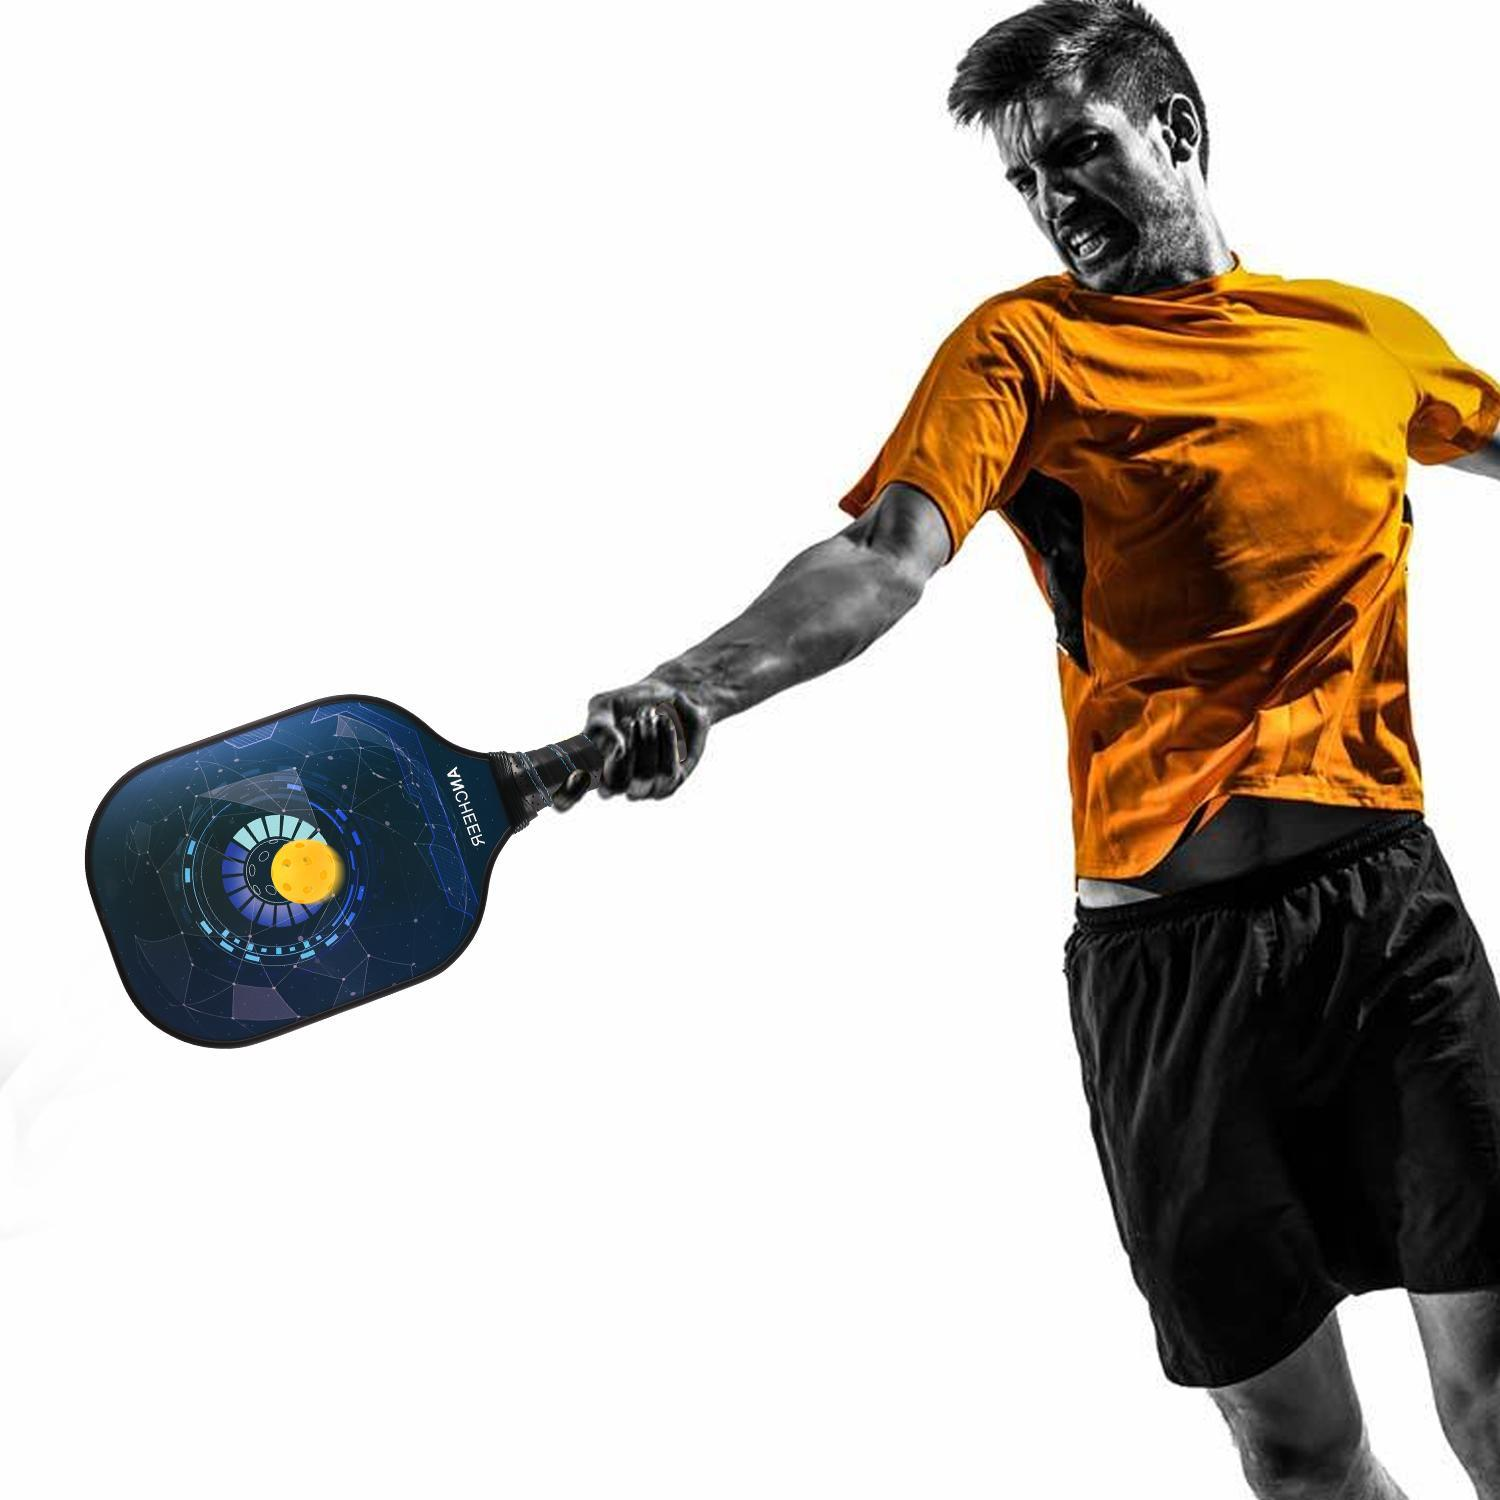 Pickleball Paddle Graphite Carbon Fiber PP Polymer Honeycomb Composite Core Pickleball Paddle Set CCGE